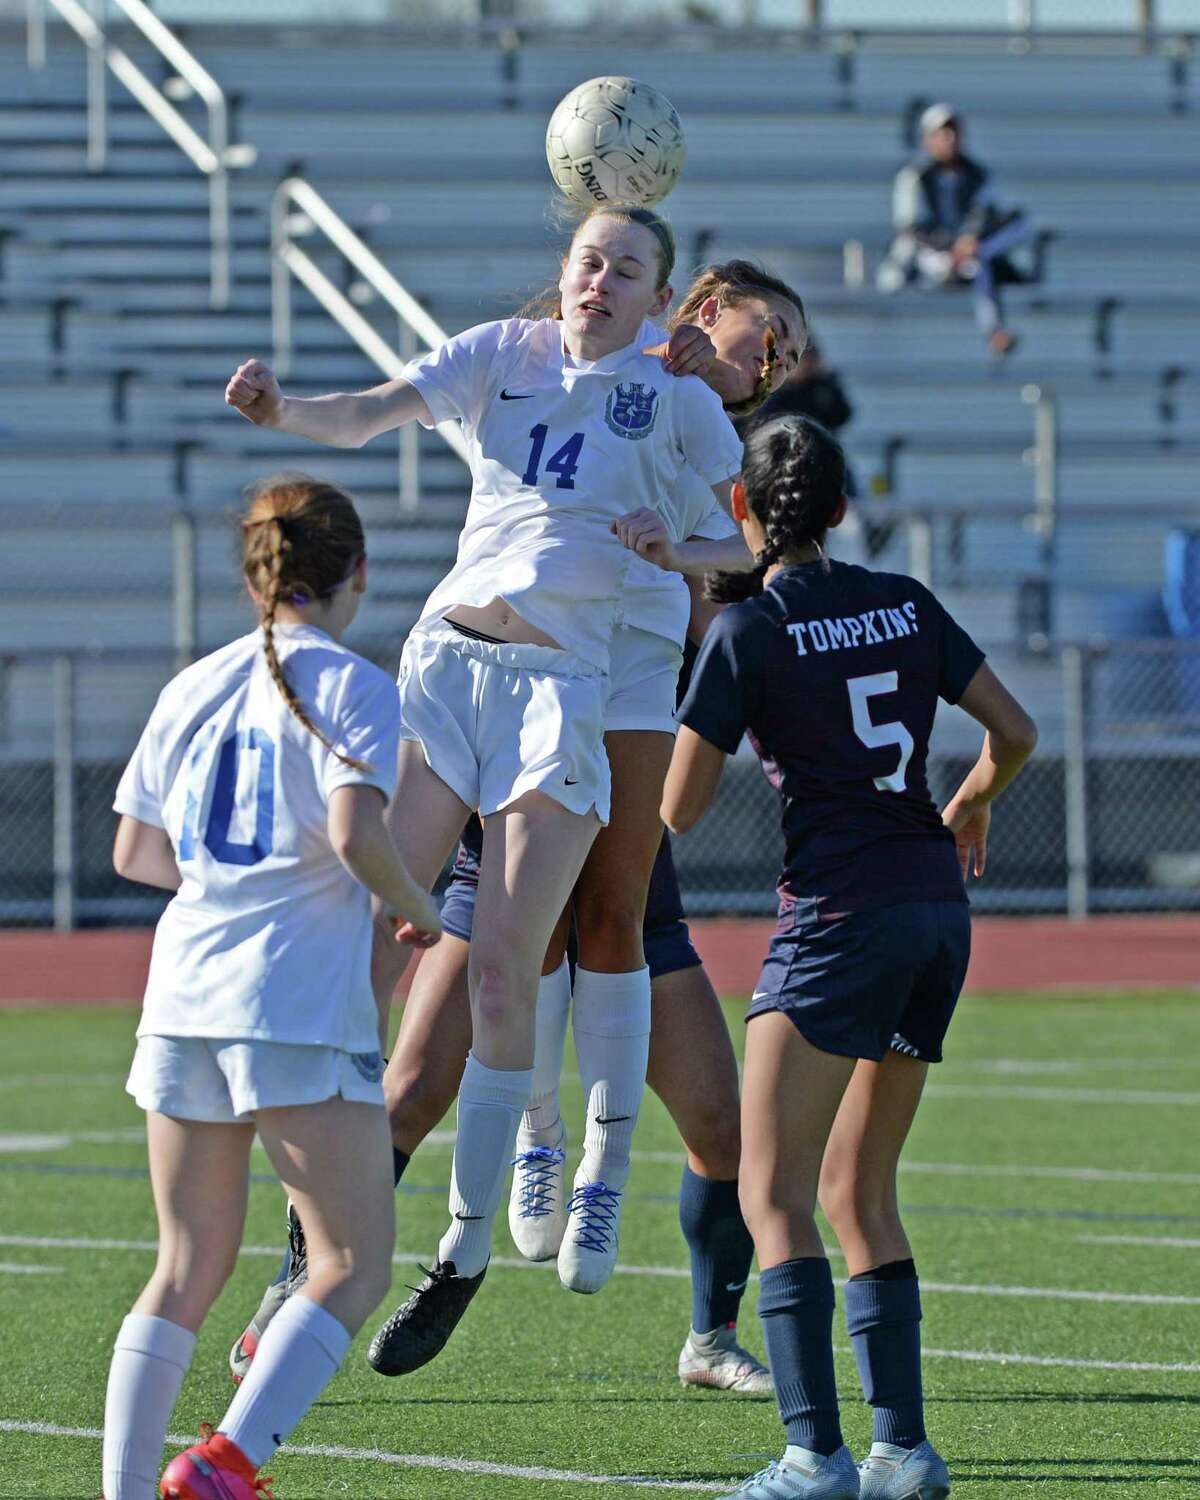 Ava Long (14) of Clear Springs heads a ball during the second half of the girls soccer game between the Tompkins Falcons and the Clear Springs Chargers in the I-10 Shootout on Thursday at Tompkins High School.